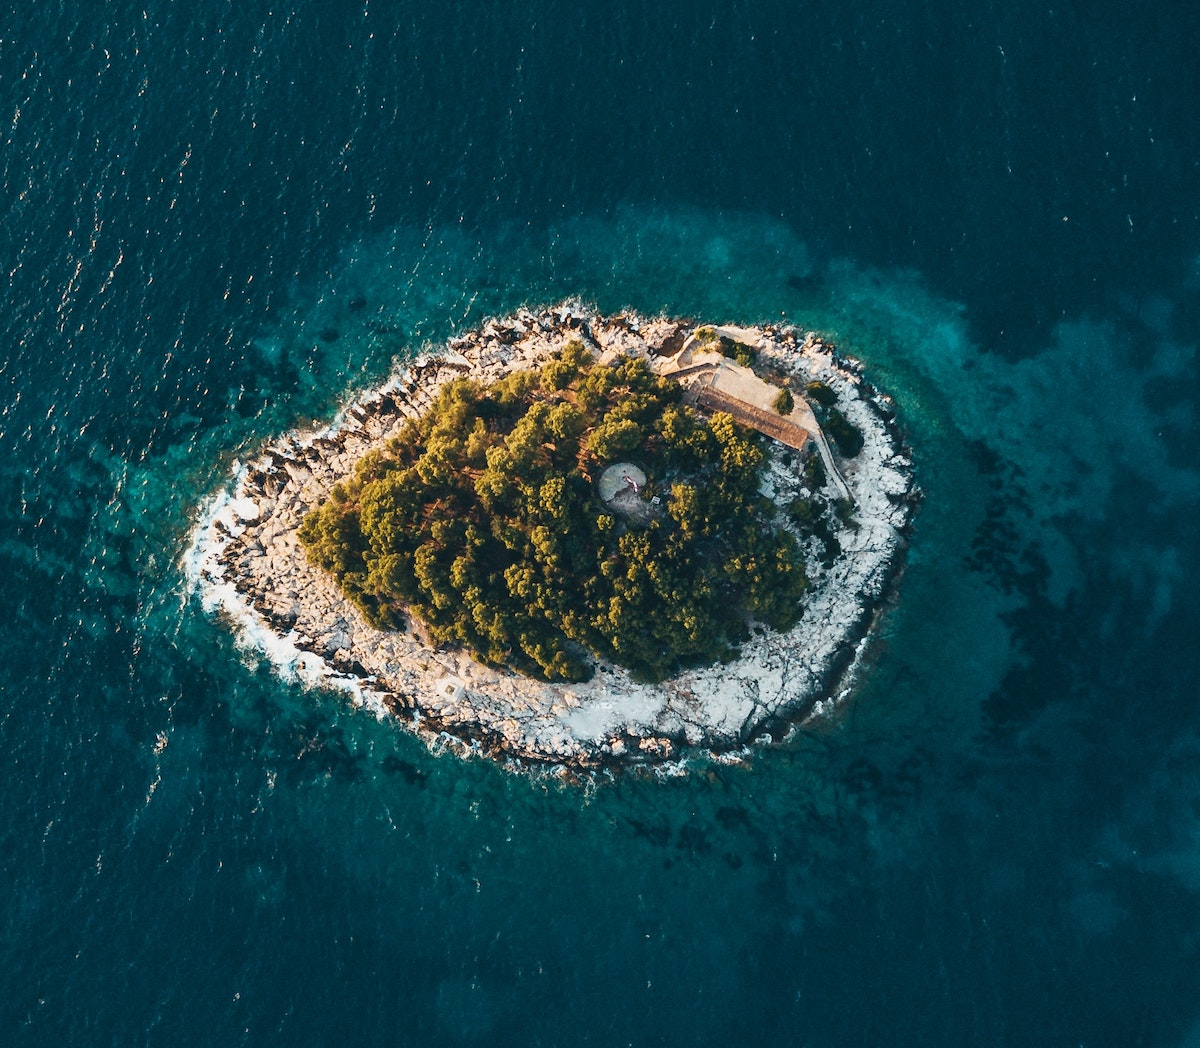 Tough Questions Teenagers Ask: What About the Person On a Desert Island?